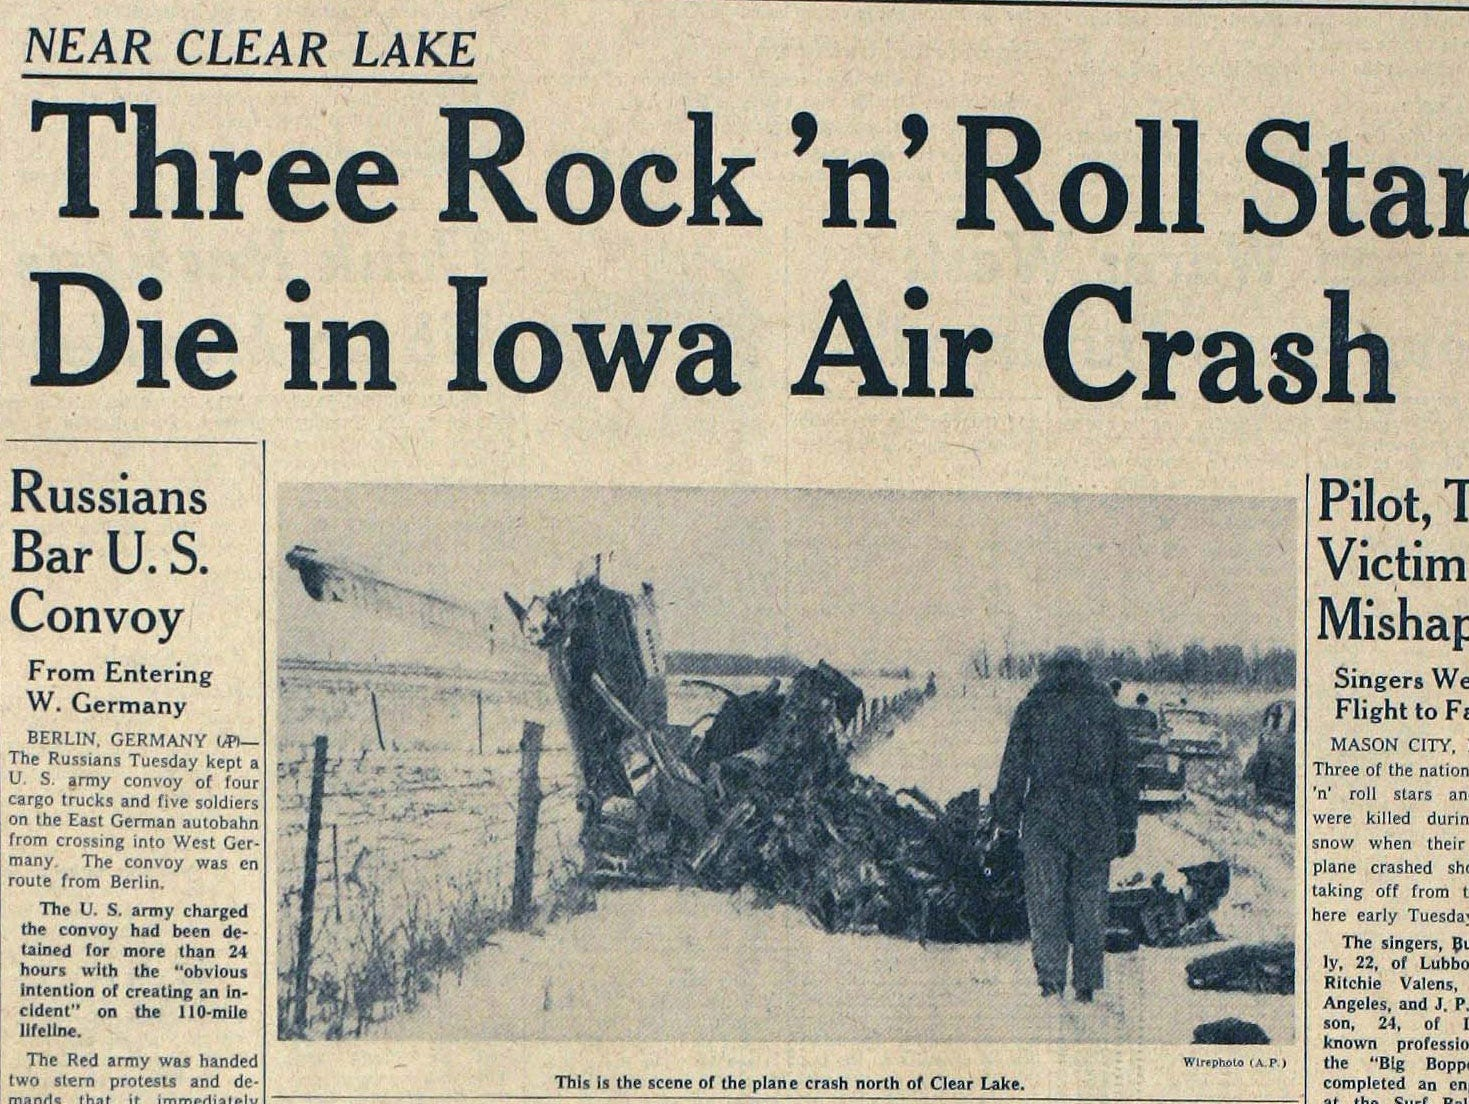 Des Moines Tribune front page Feb 3, 1959 -- plane crash Clear Lake , Iowa, Buddy Holly, Ritchie Valens, J.P. Richardson. Three Rock and Roll stars die in Iowa air crash.